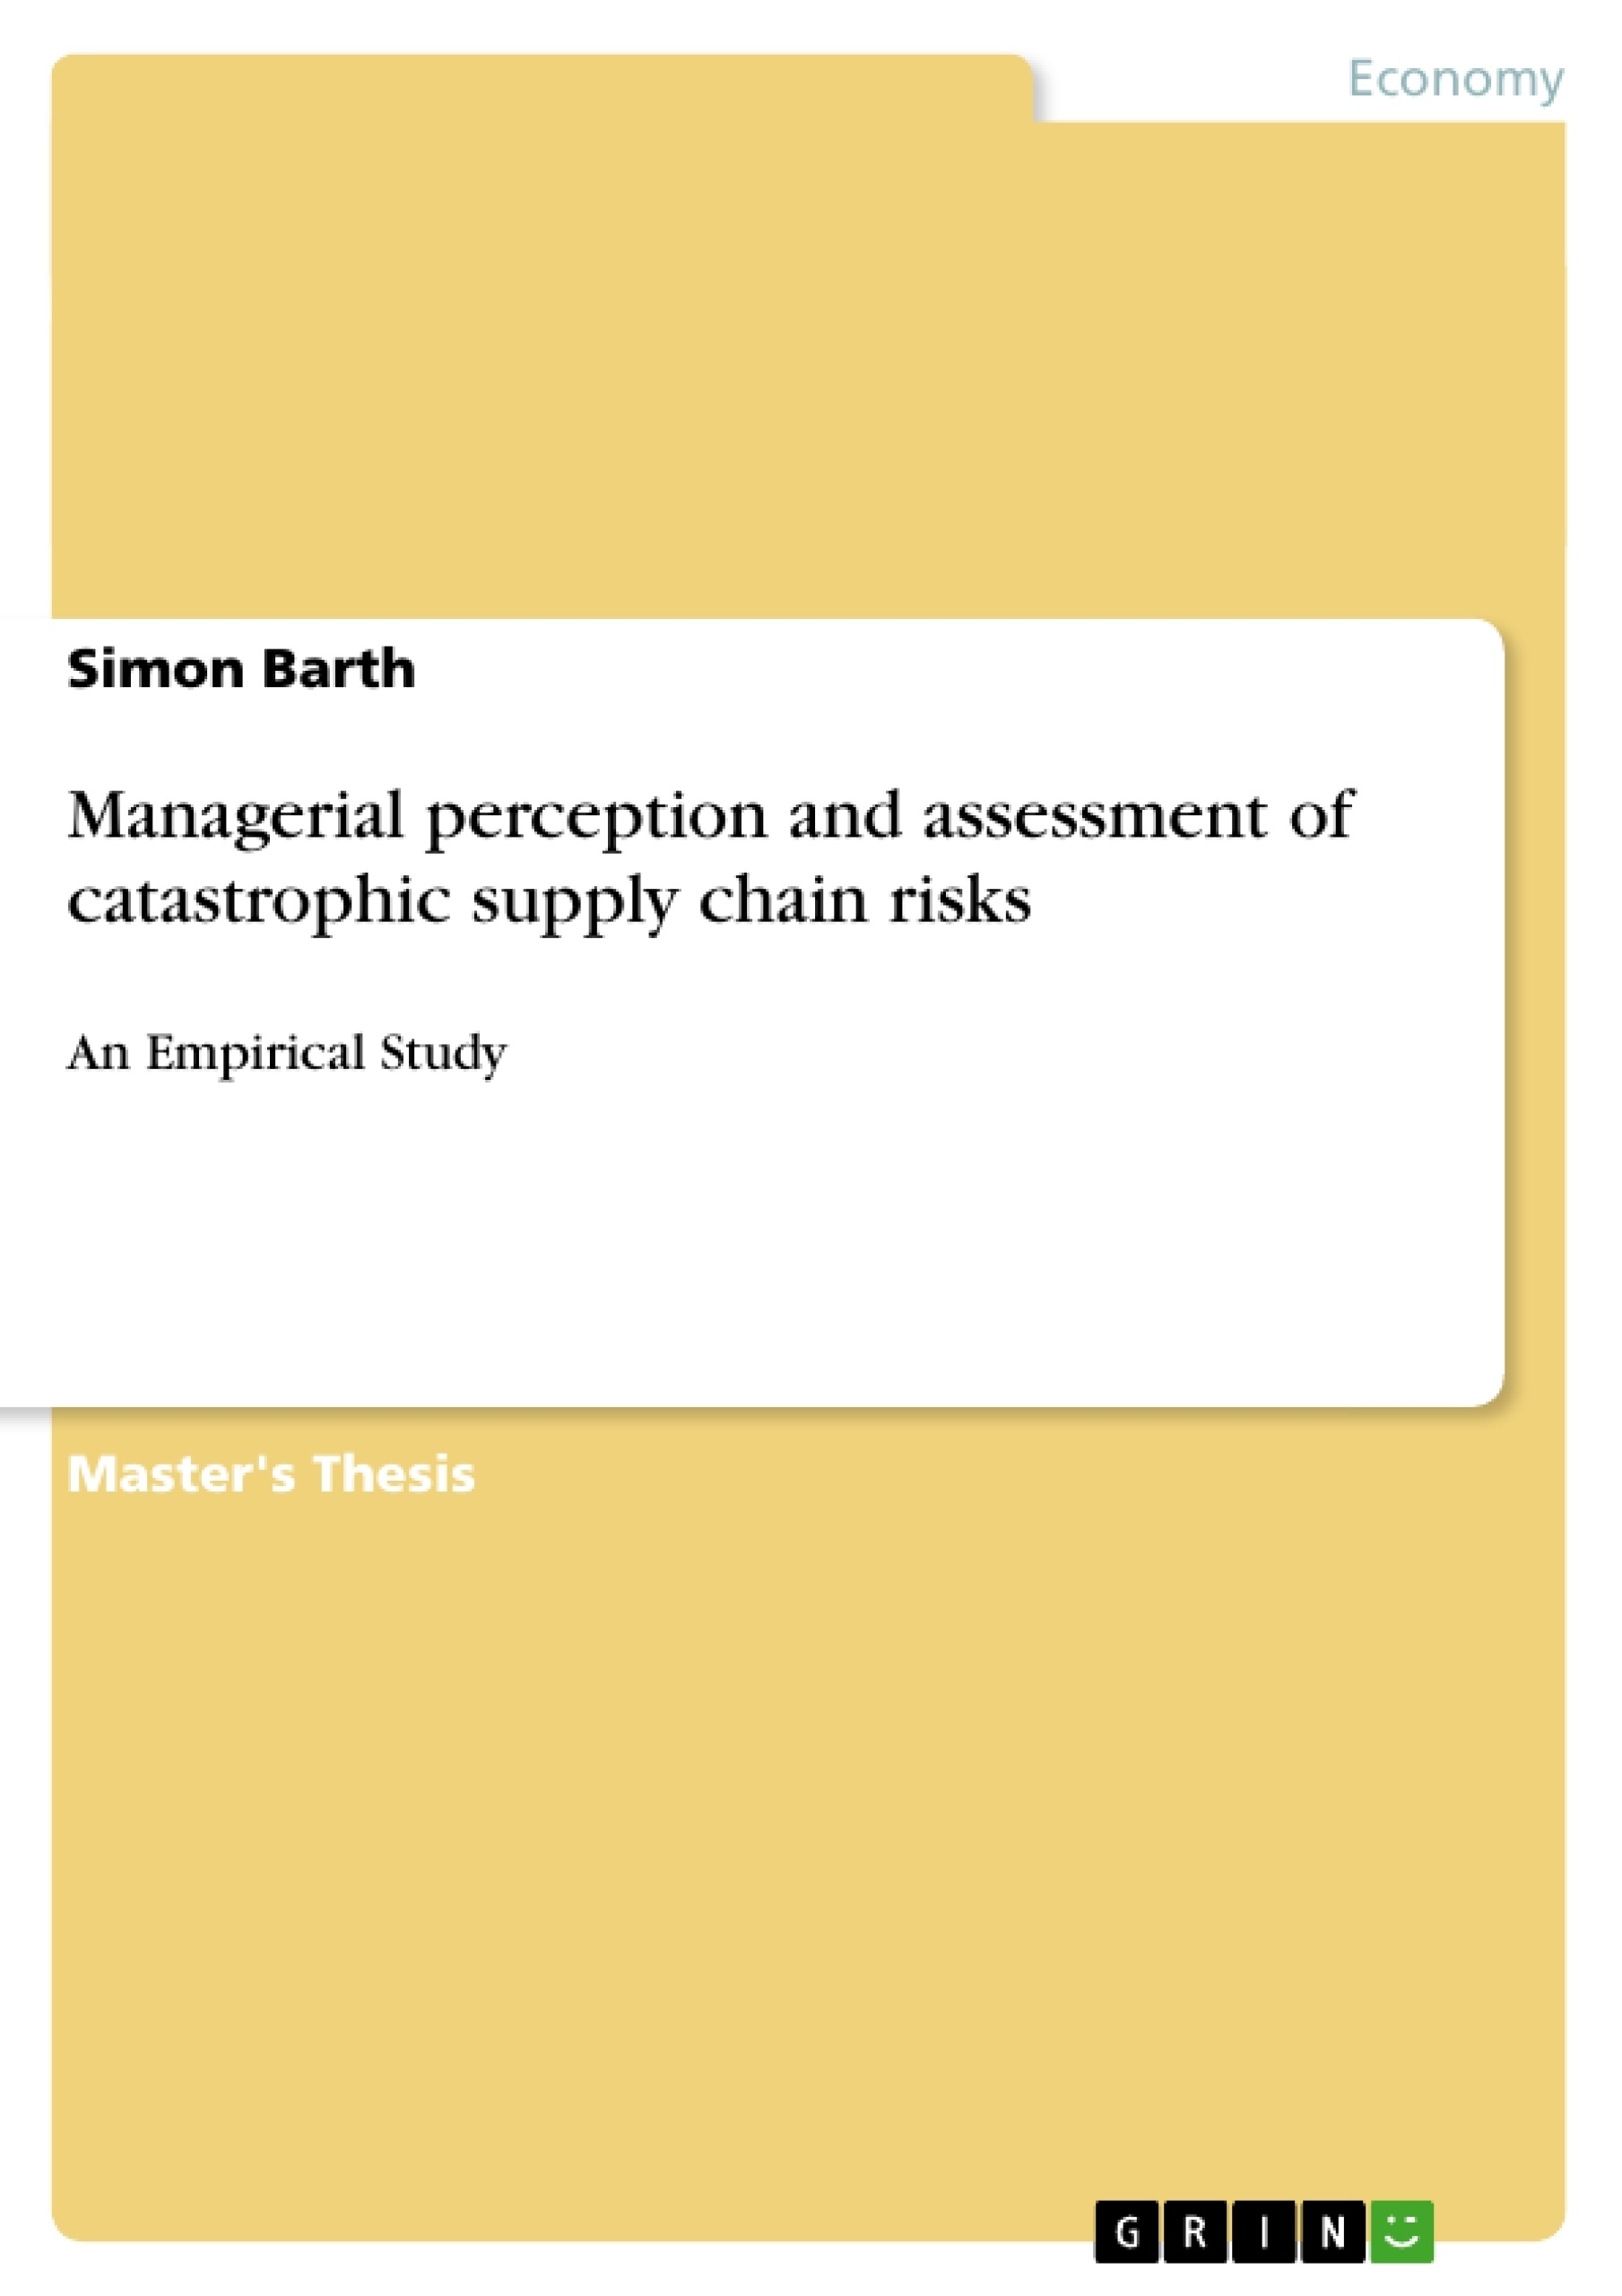 Title: Managerial perception and assessment of catastrophic supply chain risks